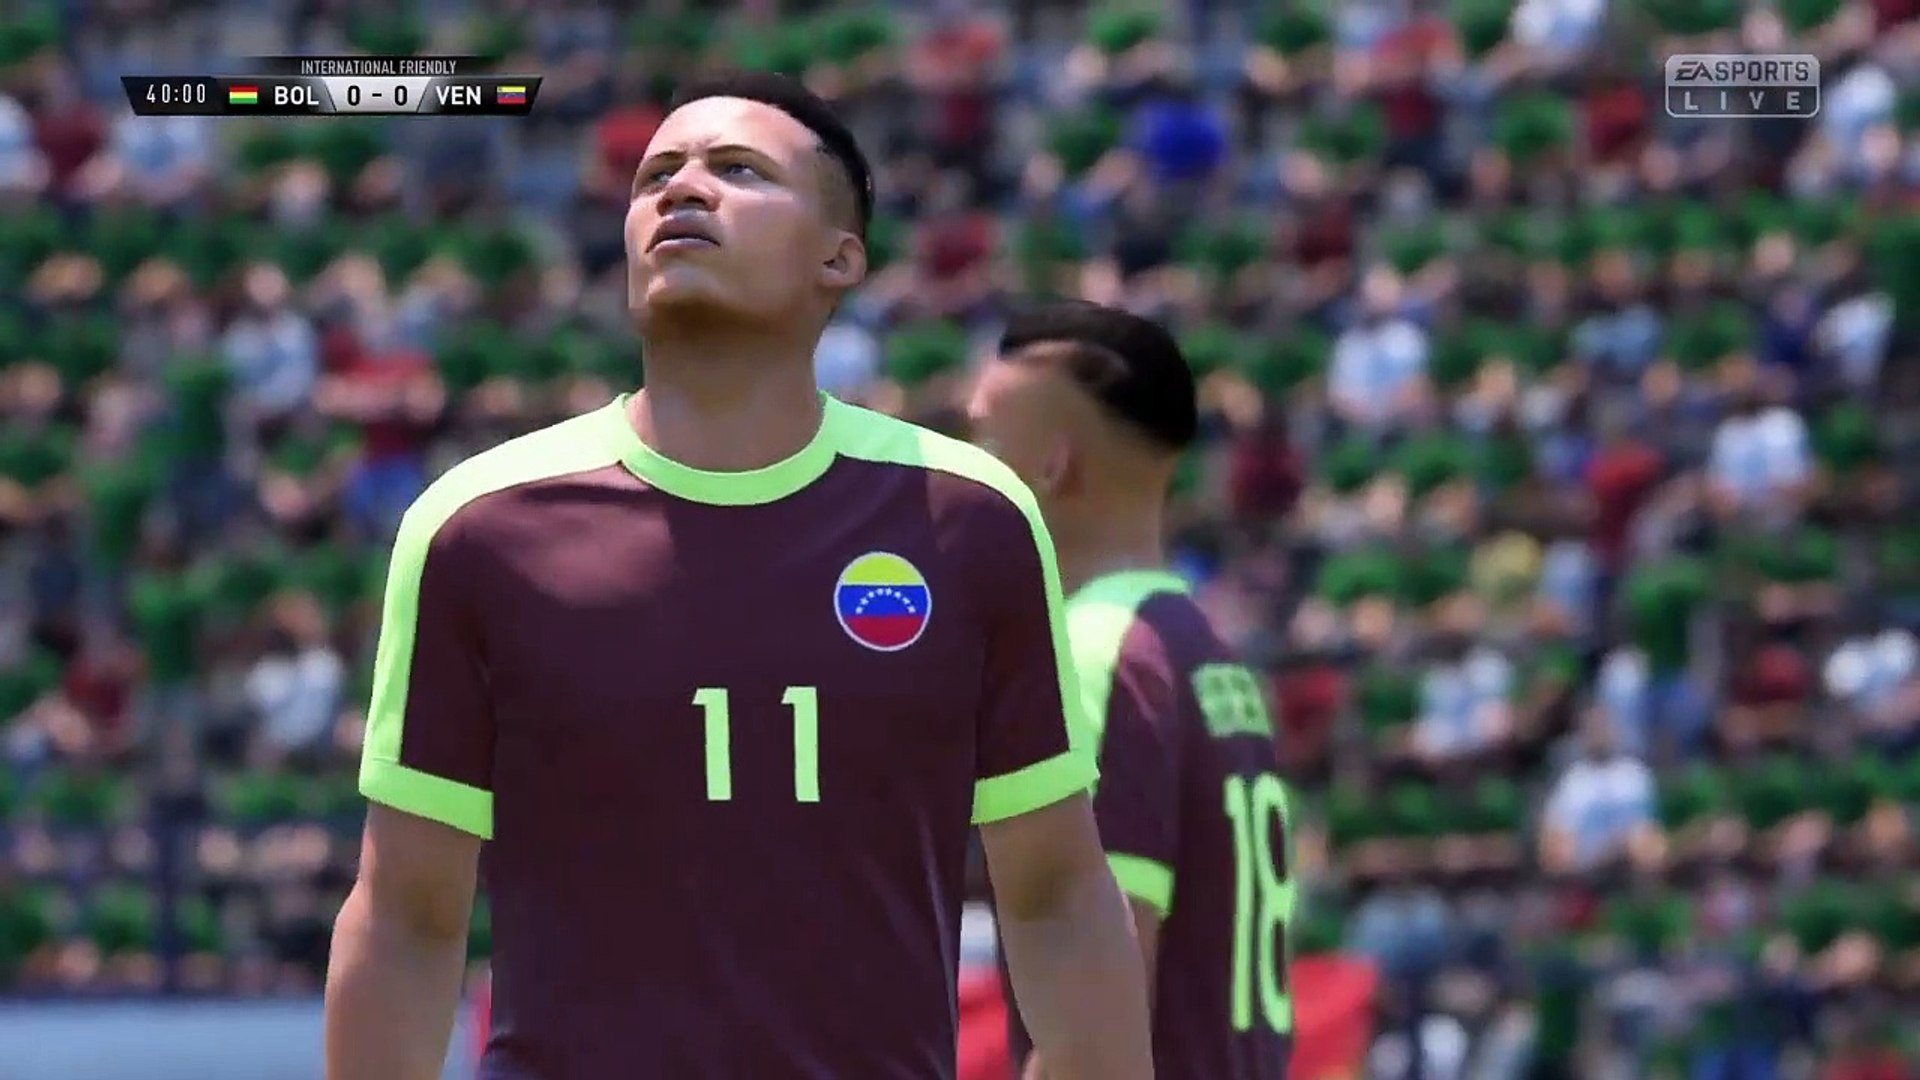 Copa America - How Bolivia Could've Defeated Venezuela - FIFA 19 Simulation Group Stage